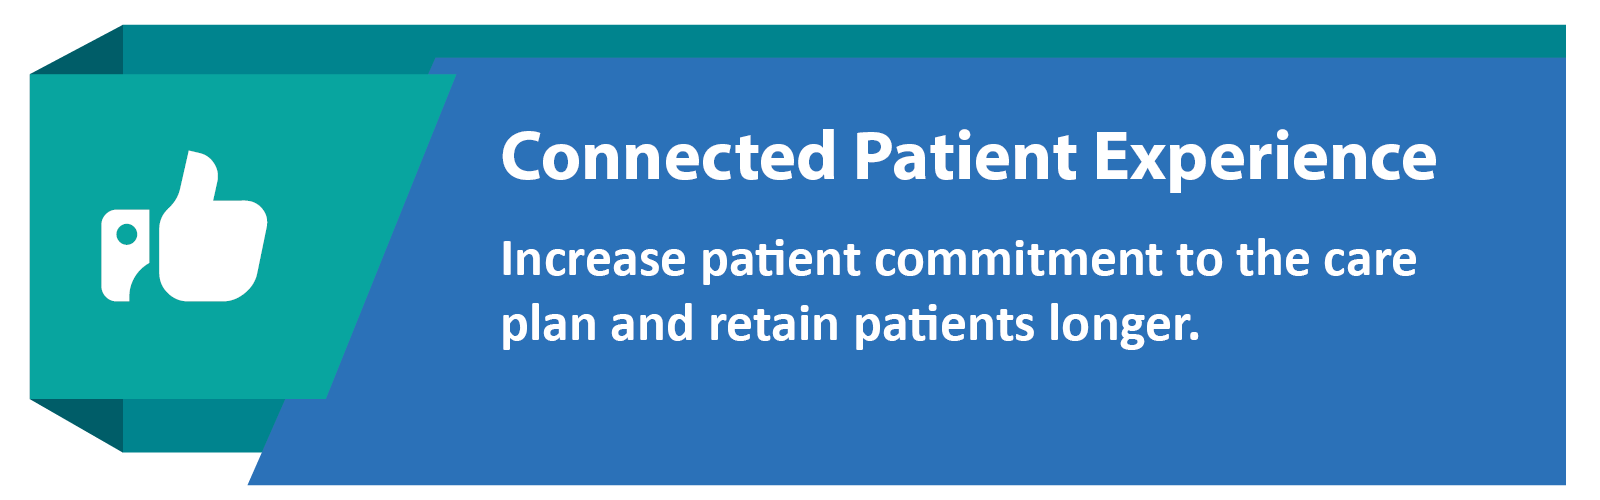 Connected Patient Experience